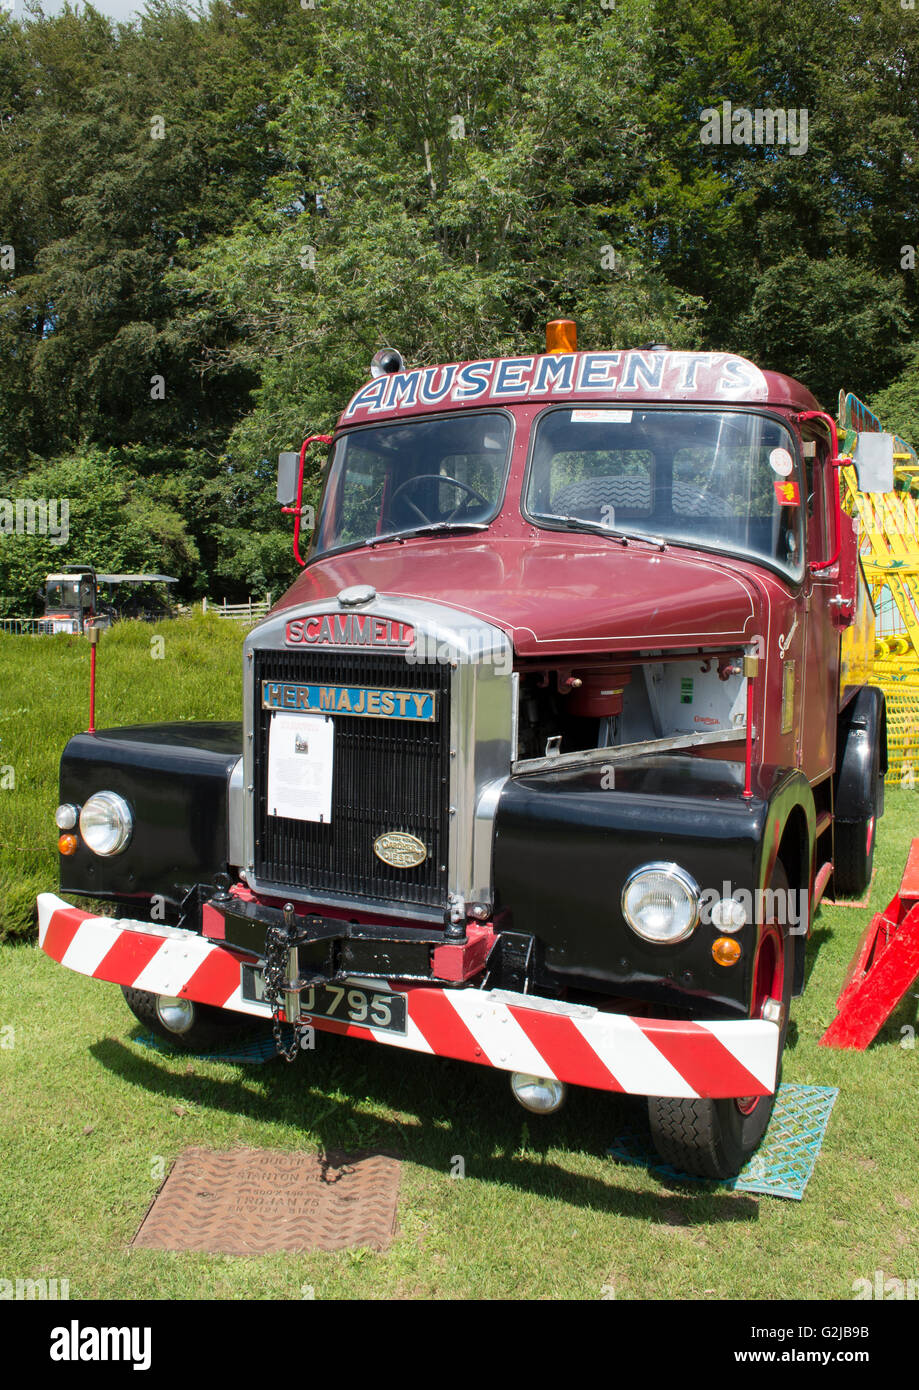 Front view of an old Scammell truck - Stock Image